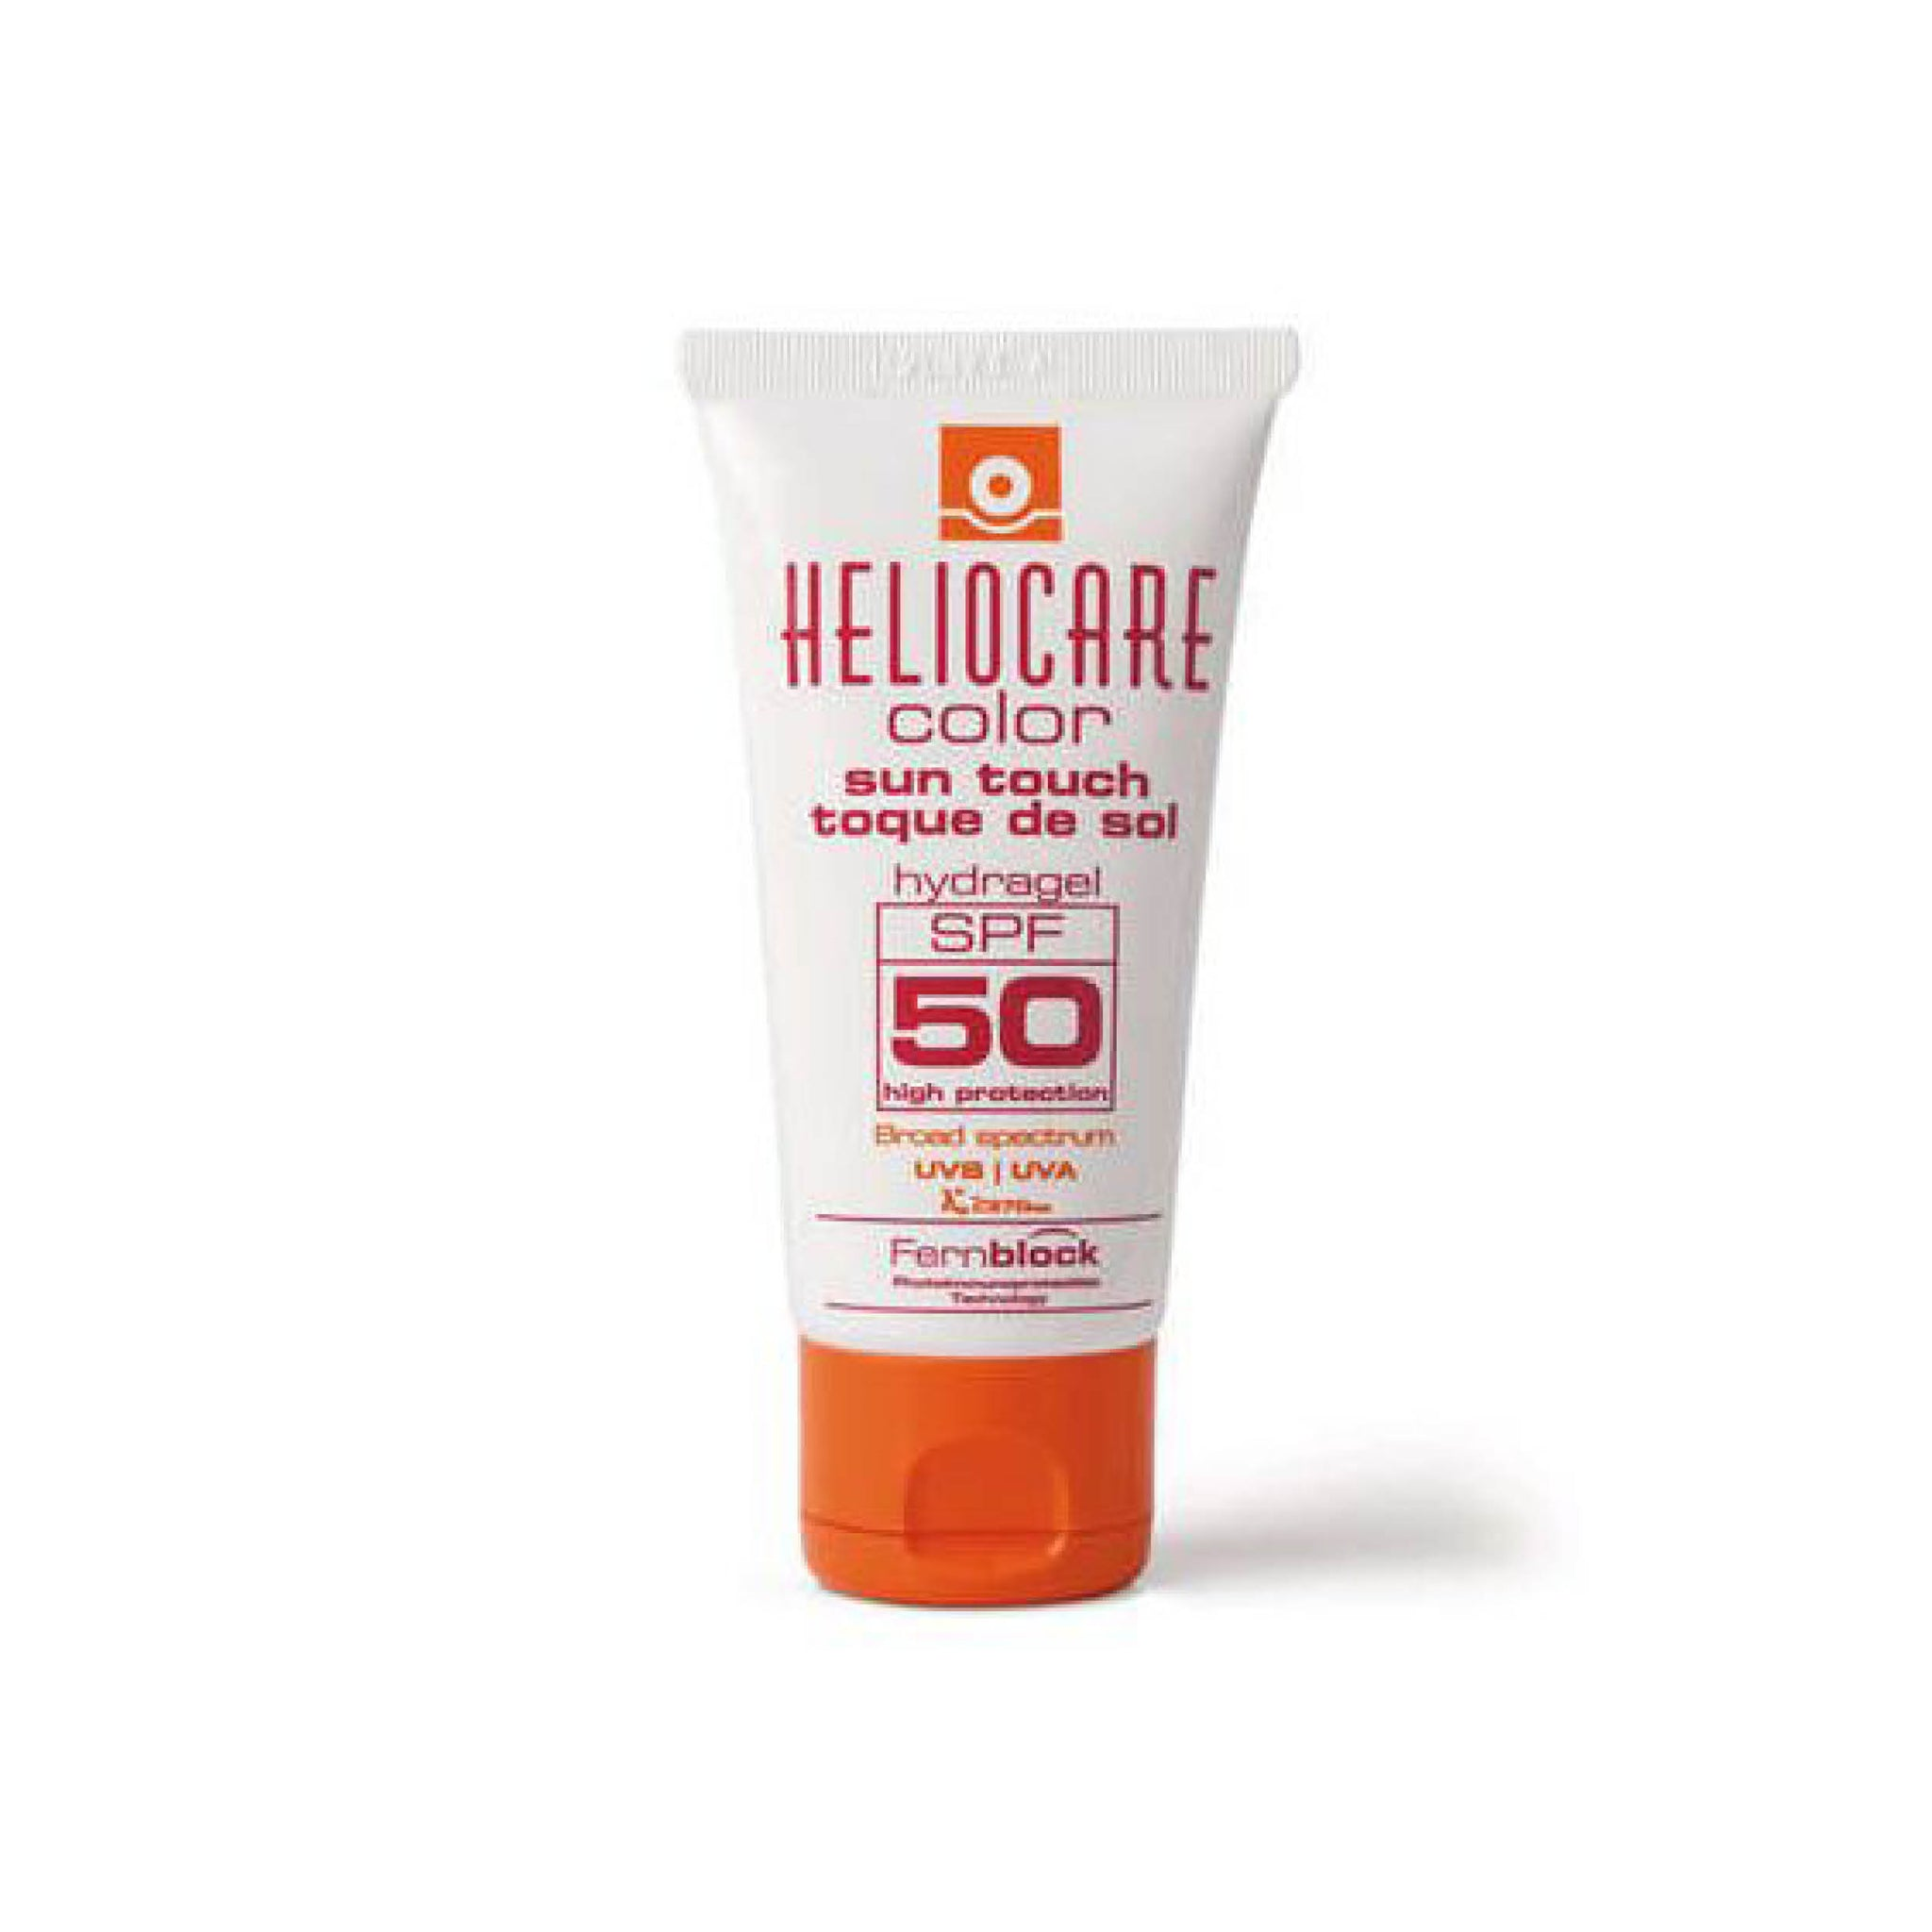 Heliocare Color Hydragel SPF50